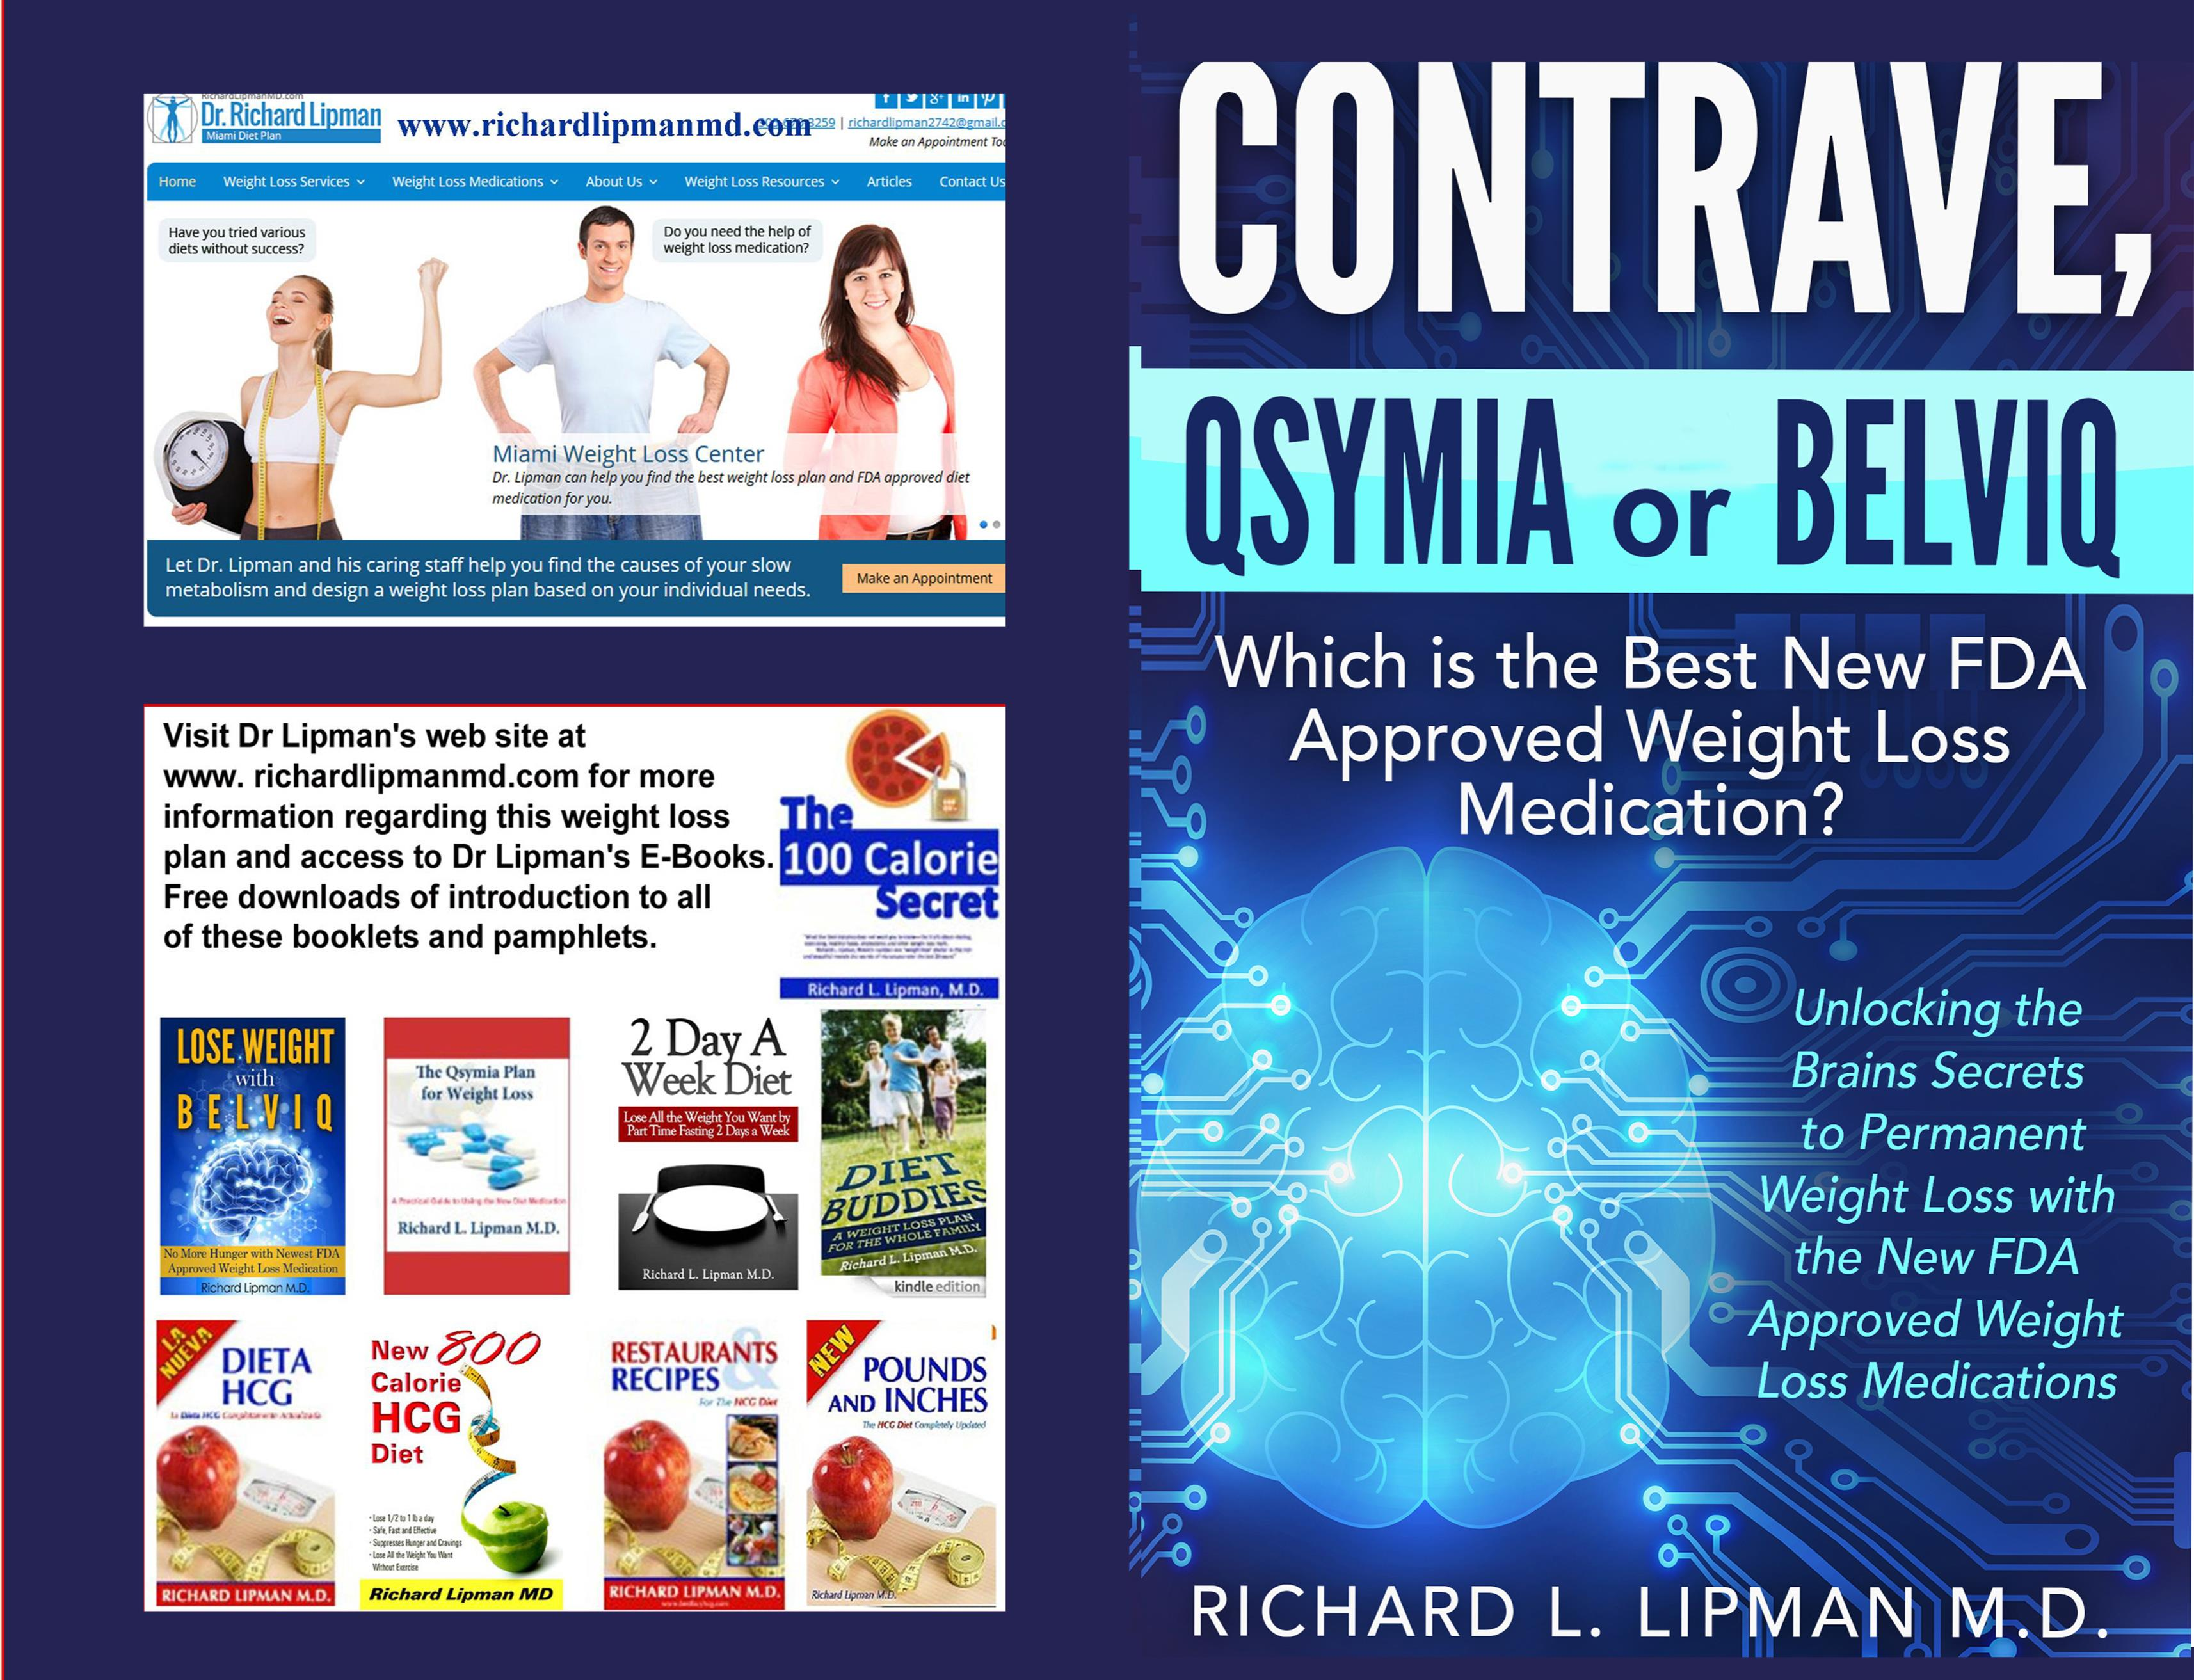 Contrave, Qsymia or Belviq: Which is the Best New FDA Approved Weight Loss Medication? cover image